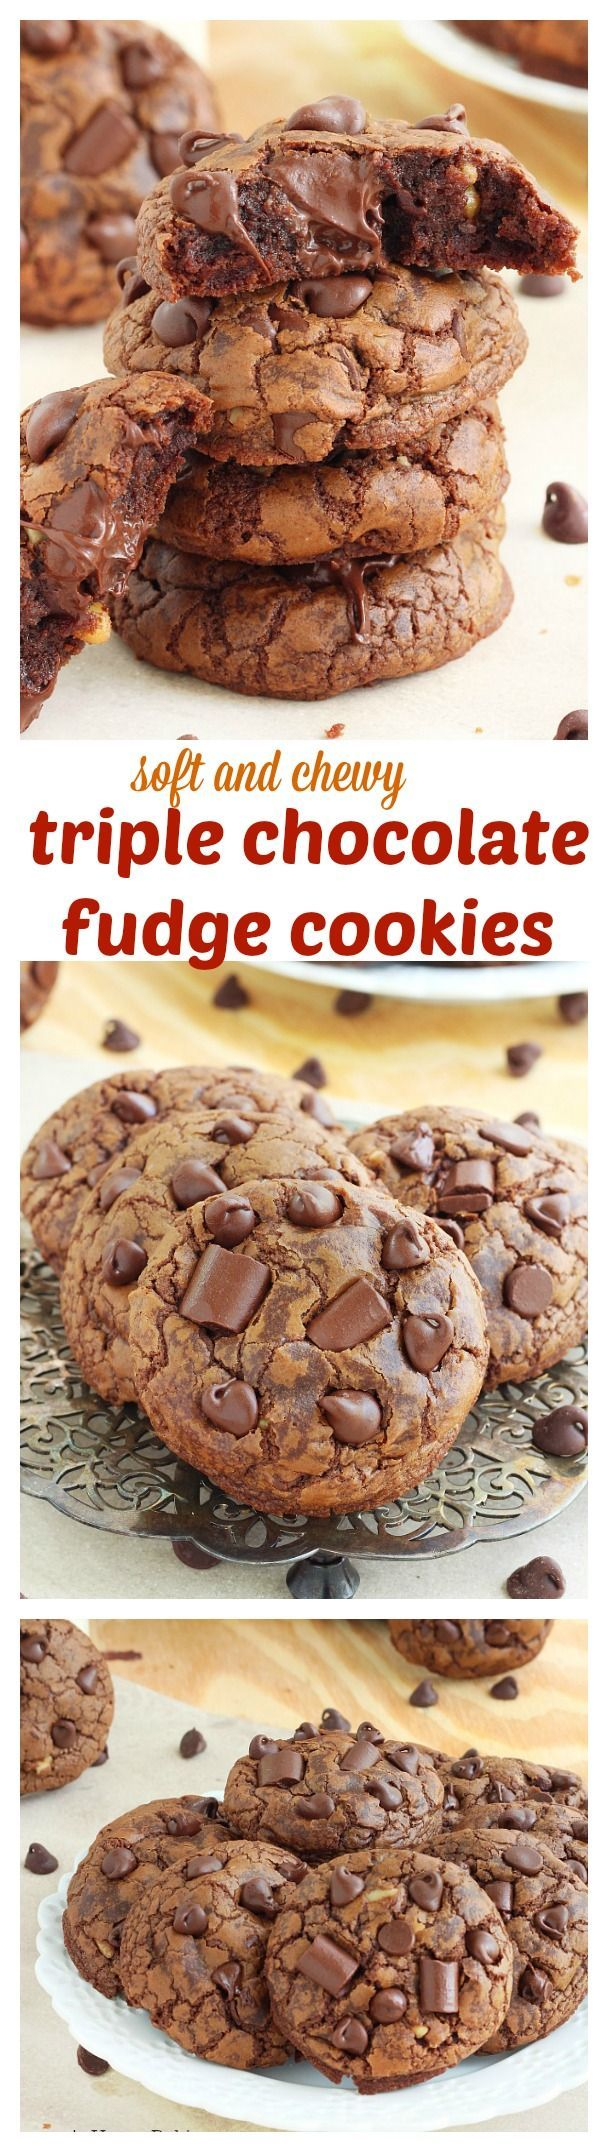 A chocolate lover's dream come true, these chocolate fudge cookies are soft, slightly chewy and packed with over a pound of chocolate! That's over 1 ounce of chocolate in each cookie!